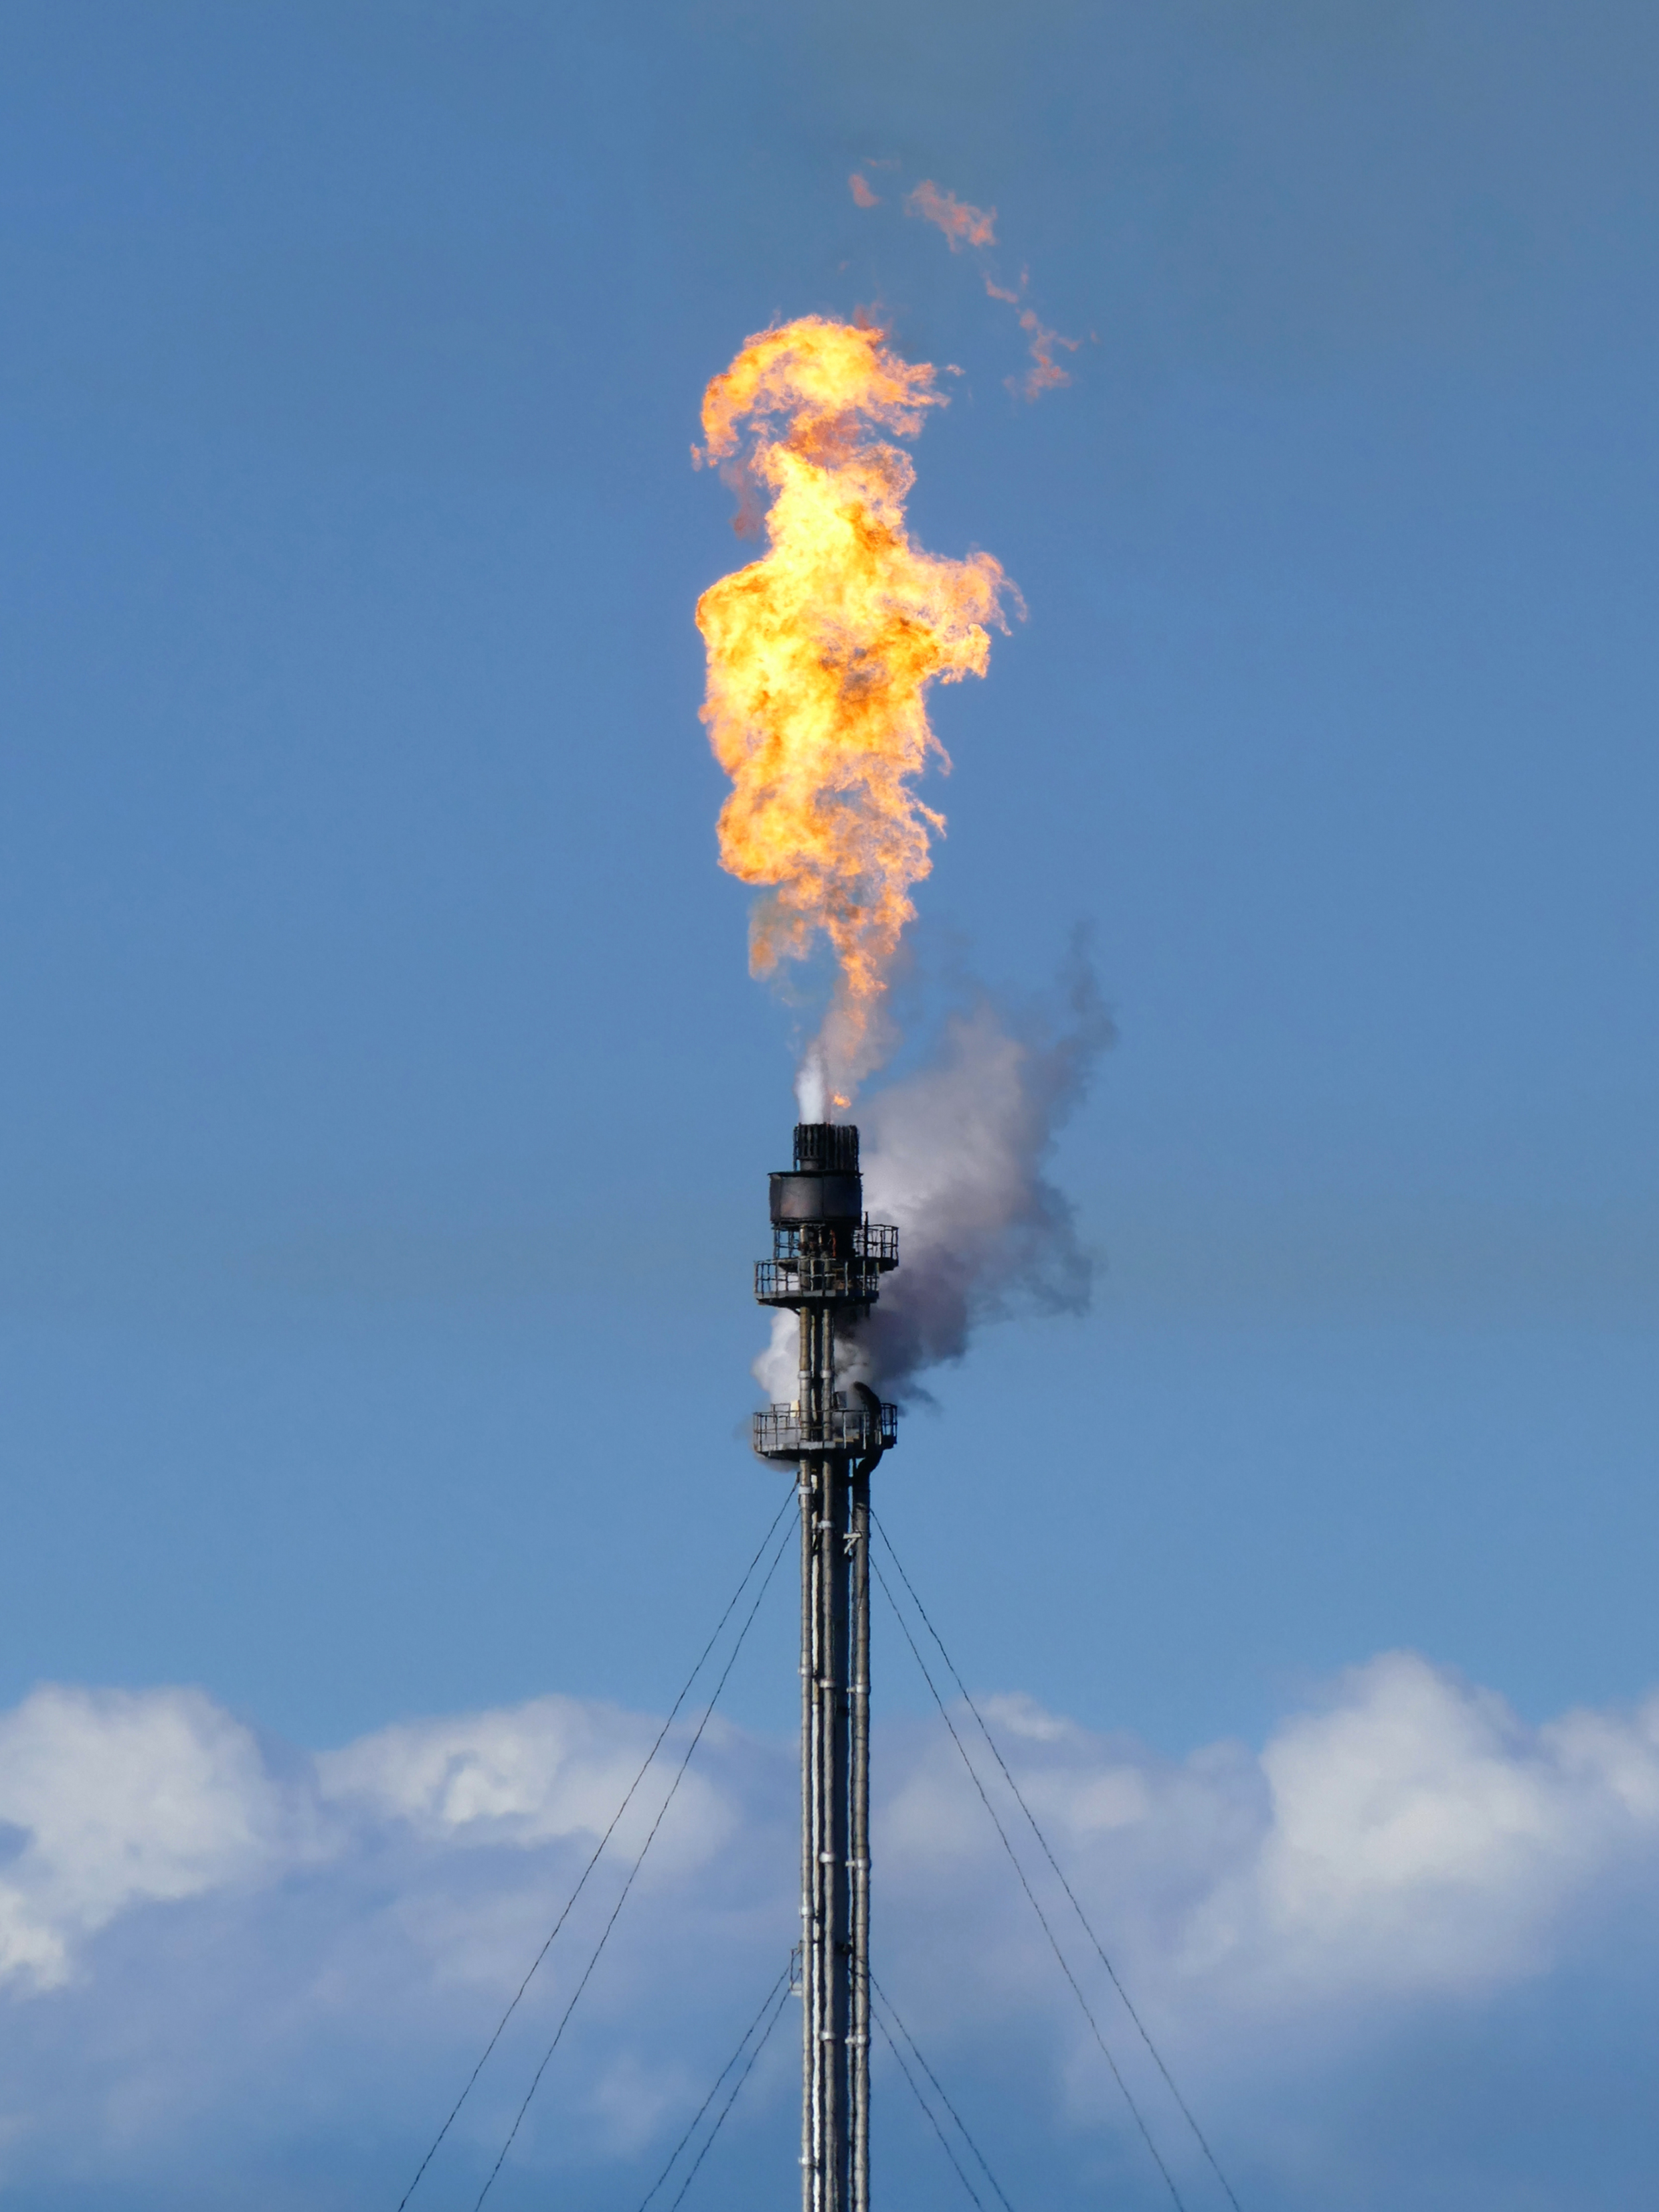 File:Gas flare on top of a flare stack at Preemraff Lysekil